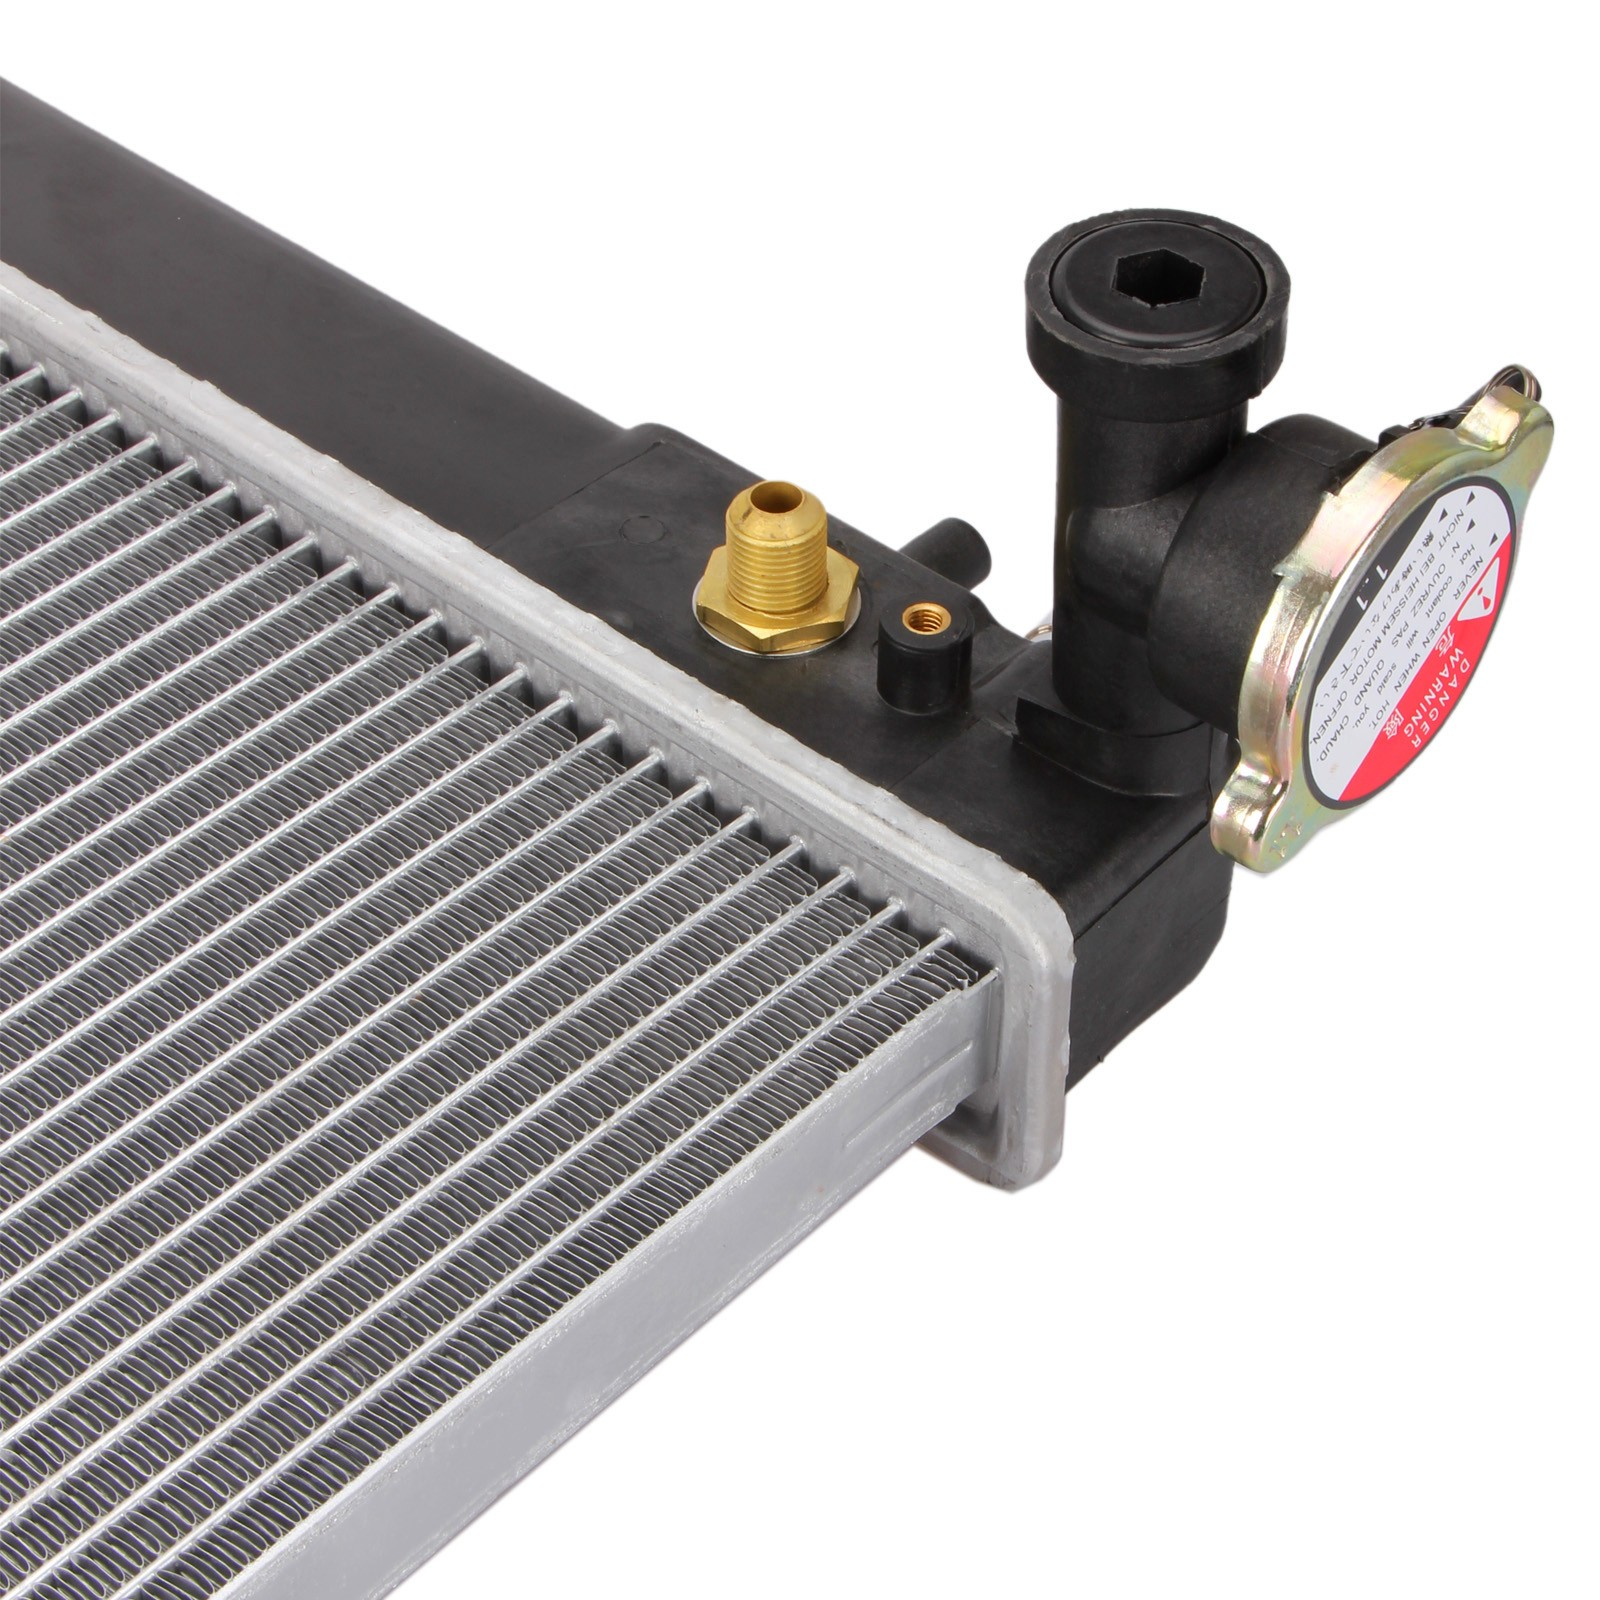 Dromedary-Manufacturer Of Holden Rodeo Radiator Premium Radiator For Holden Commodore Vt Vx V6 3-3